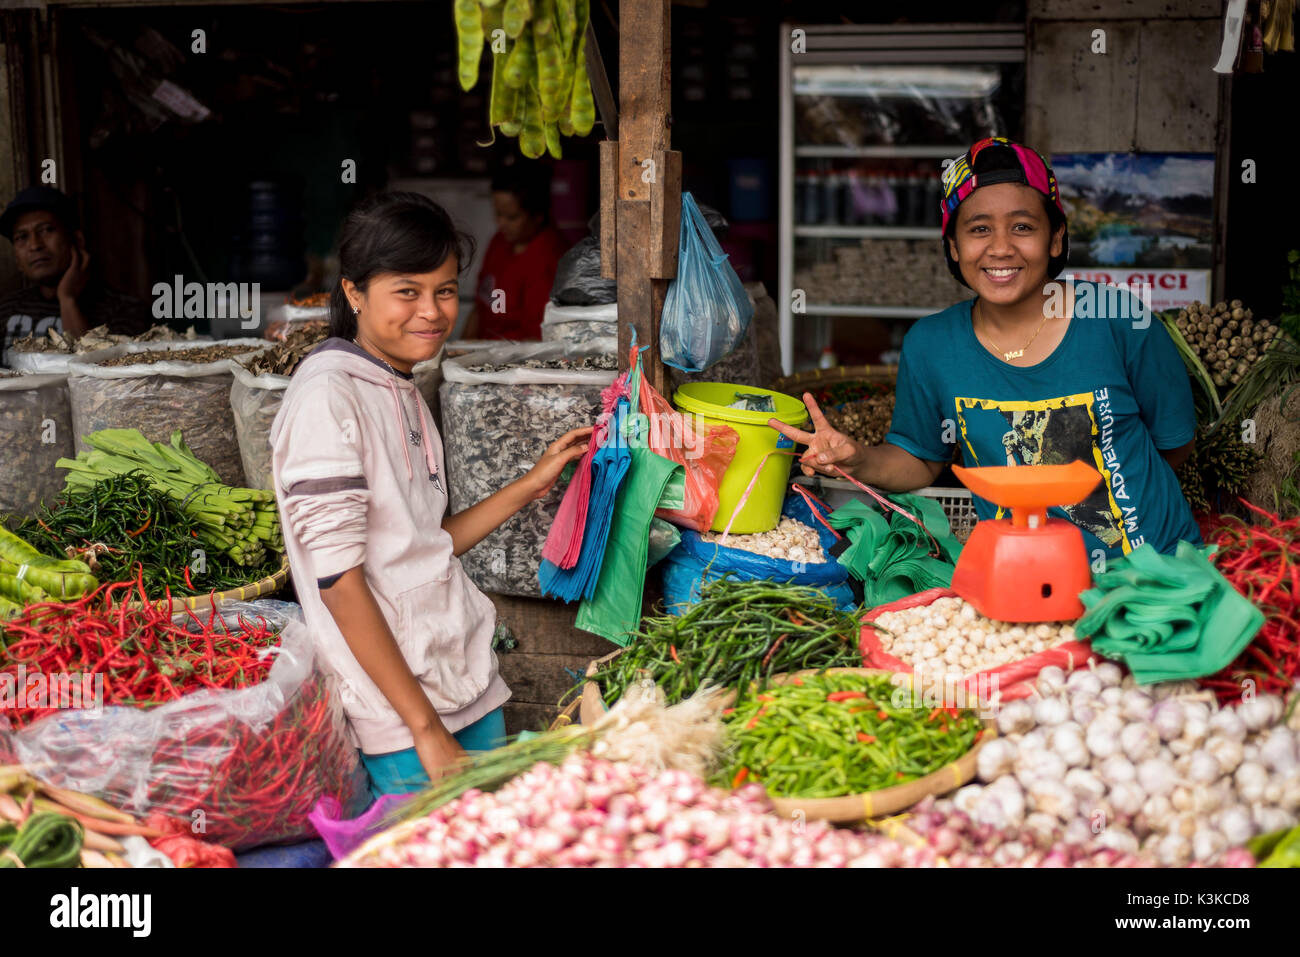 Young greengrocers in her state. The girl grins and the boy shows a Peace figure with the fingers. - Stock Image